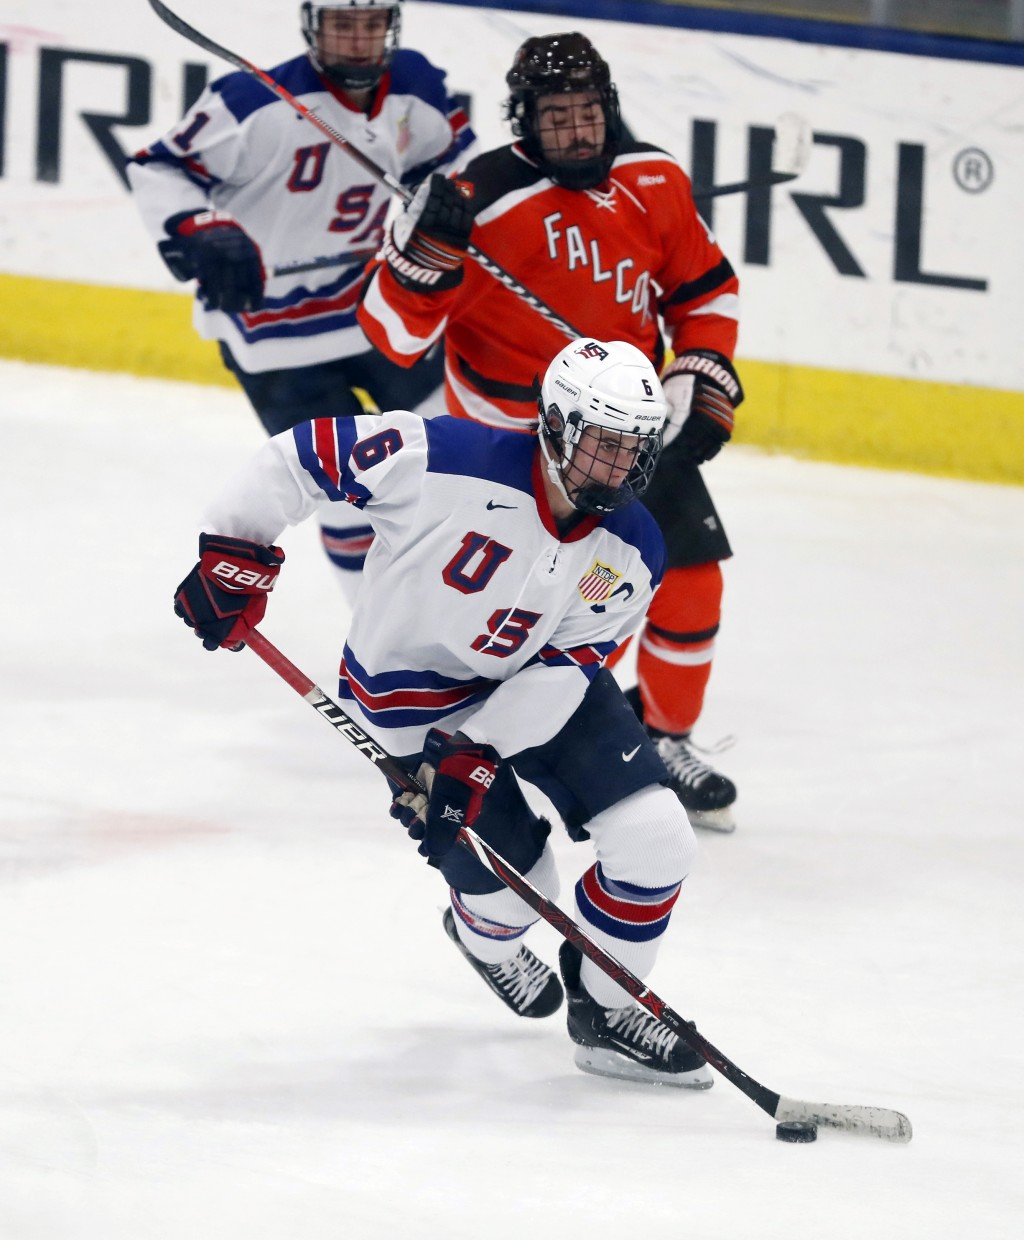 In this Wednesday, Nov. 21, 2018, photo, Jack Hughes, foreground, expected to be a top pick in the next NHL hockey draft, plays against Bowling Green